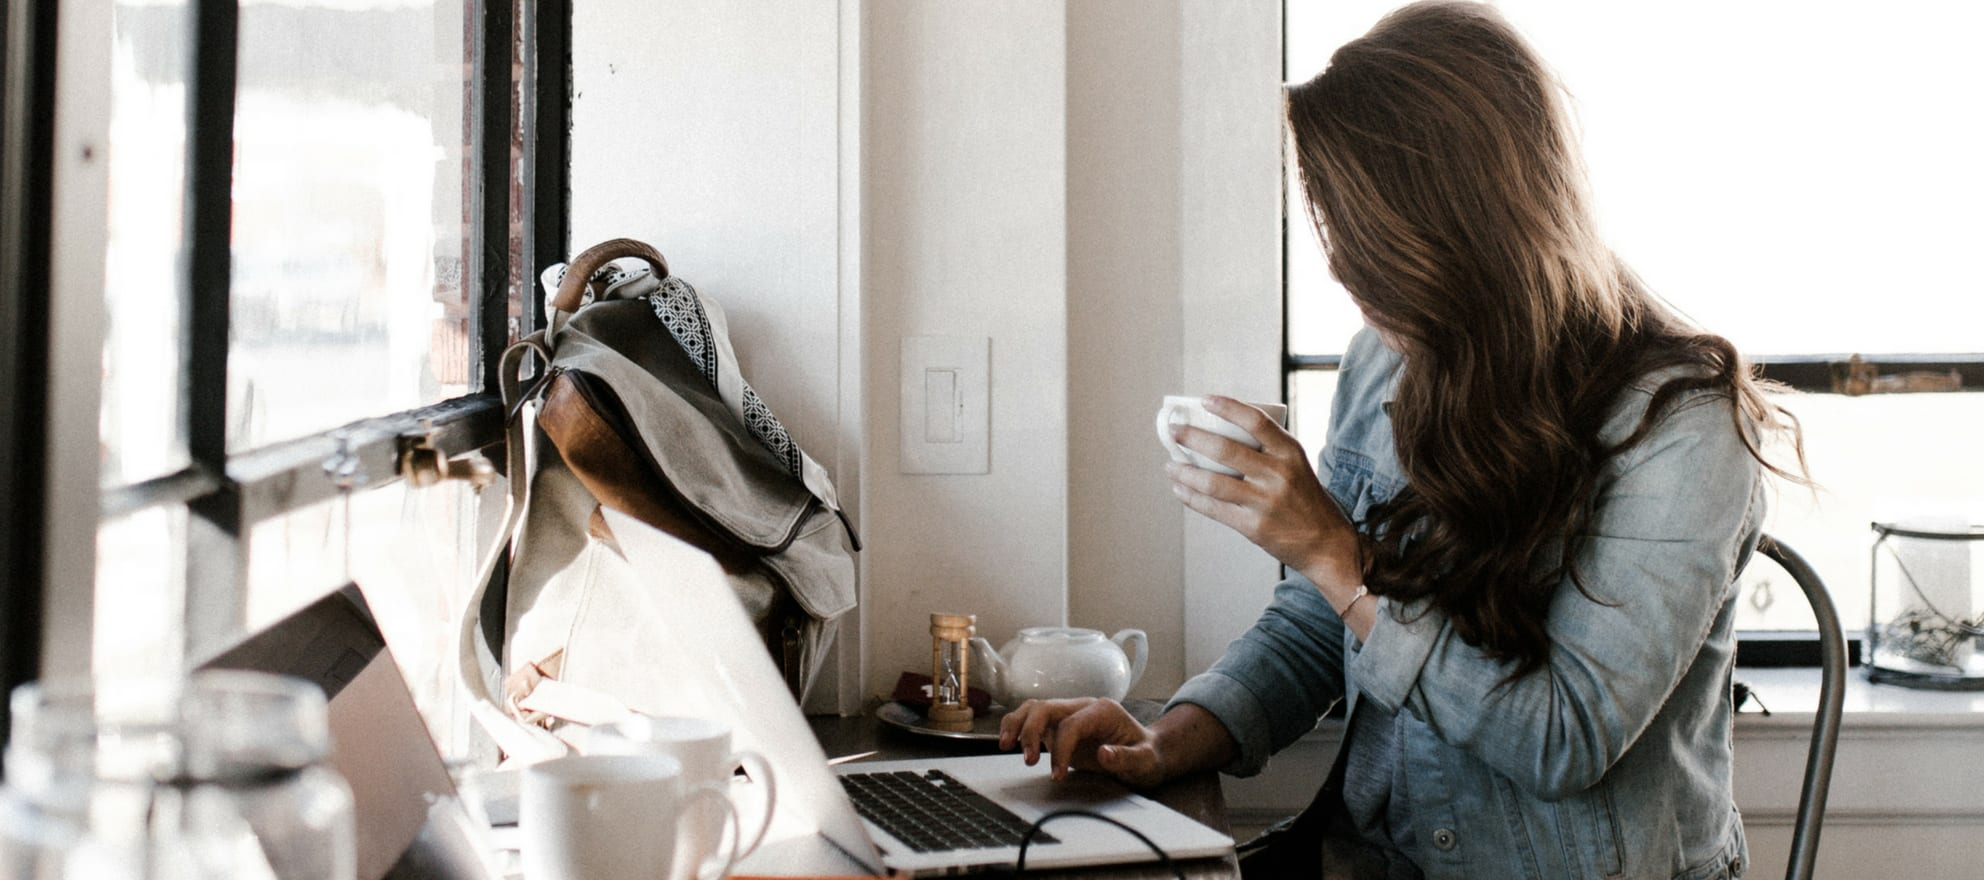 OC Interactive Digital Agency Featured Image Millennial Blog    Image of Featured Image Millennial